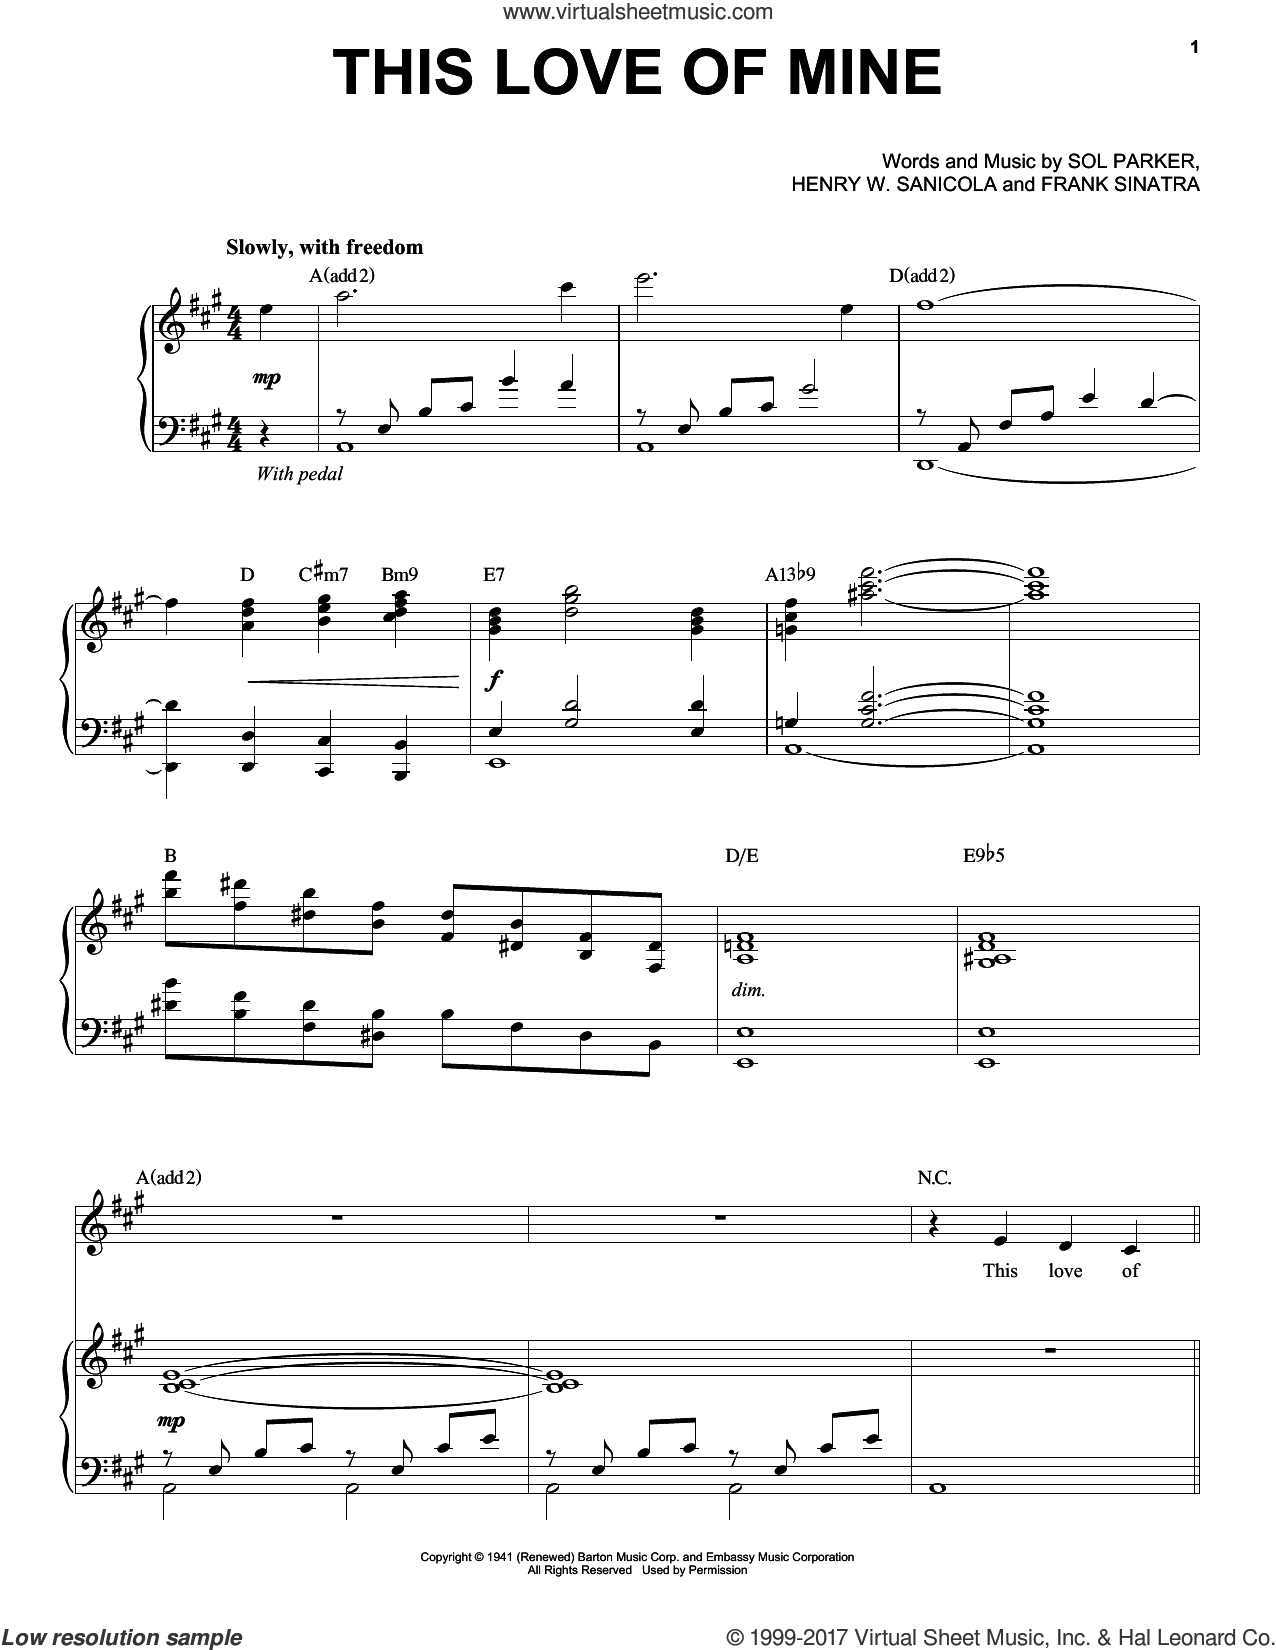 This Love Of Mine sheet music for voice and piano by Michael Buble, Frank Sinatra, Henry W. Sanicola and Sol Parker, intermediate skill level